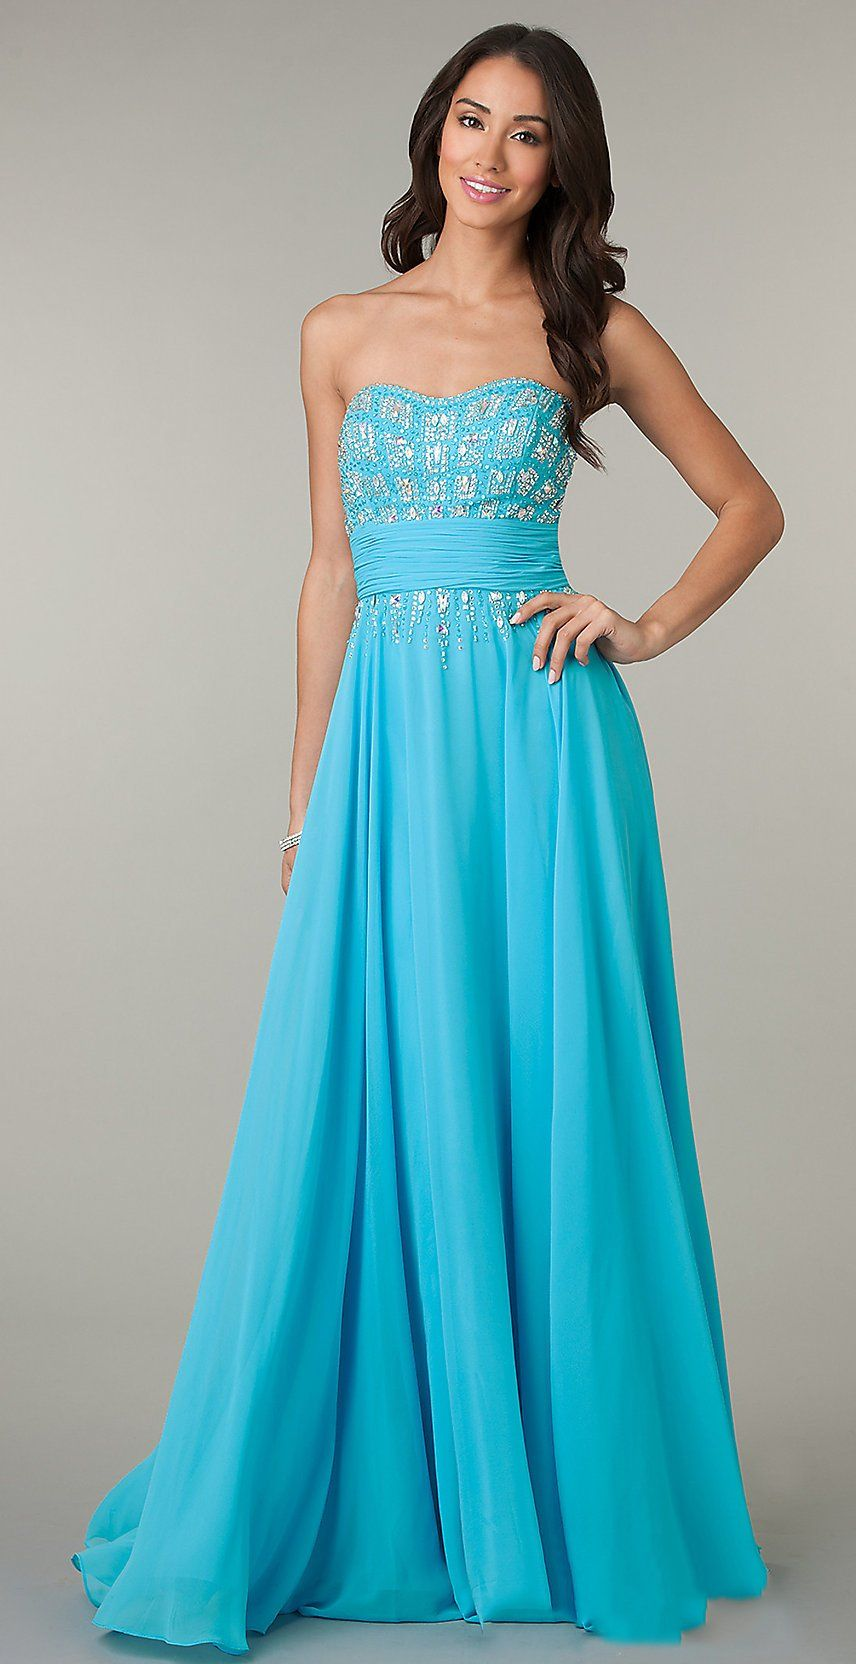 Sheath Turquoise Prom Chiffon Gown Long Strapless Flowy Sparkly Top ...